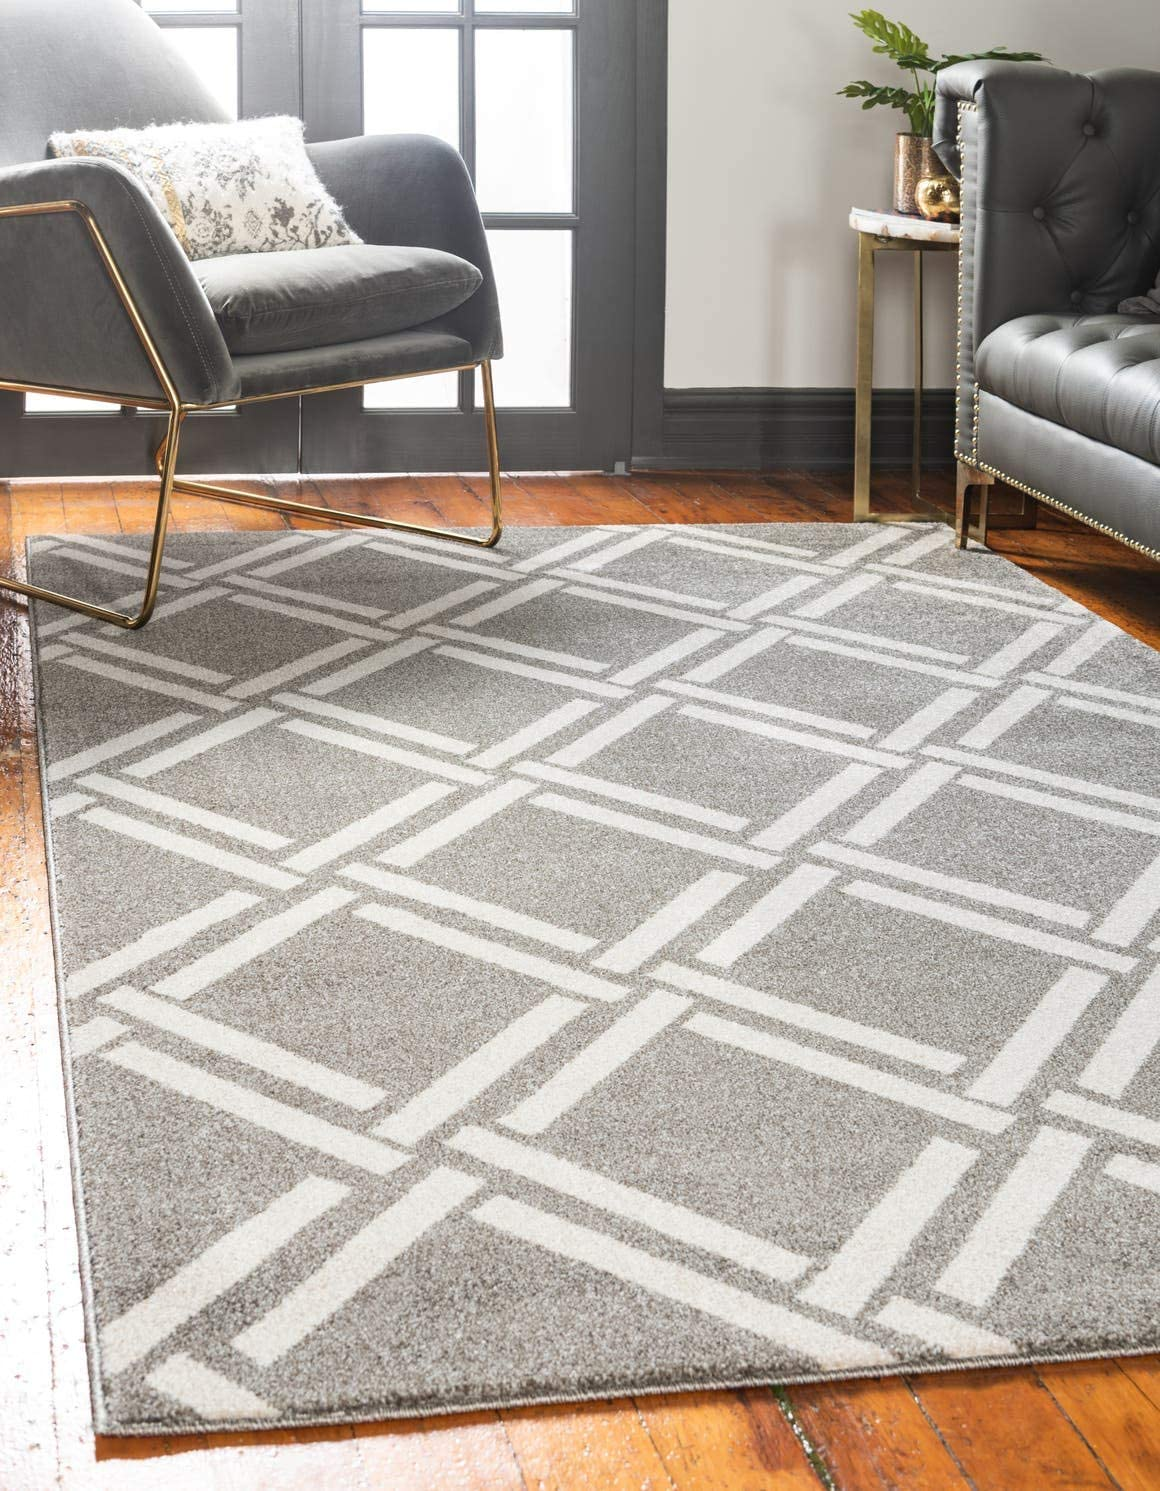 Unique Loom Trellis Collection Geometric Modern Gray Area Rug 5 0 x 8 0